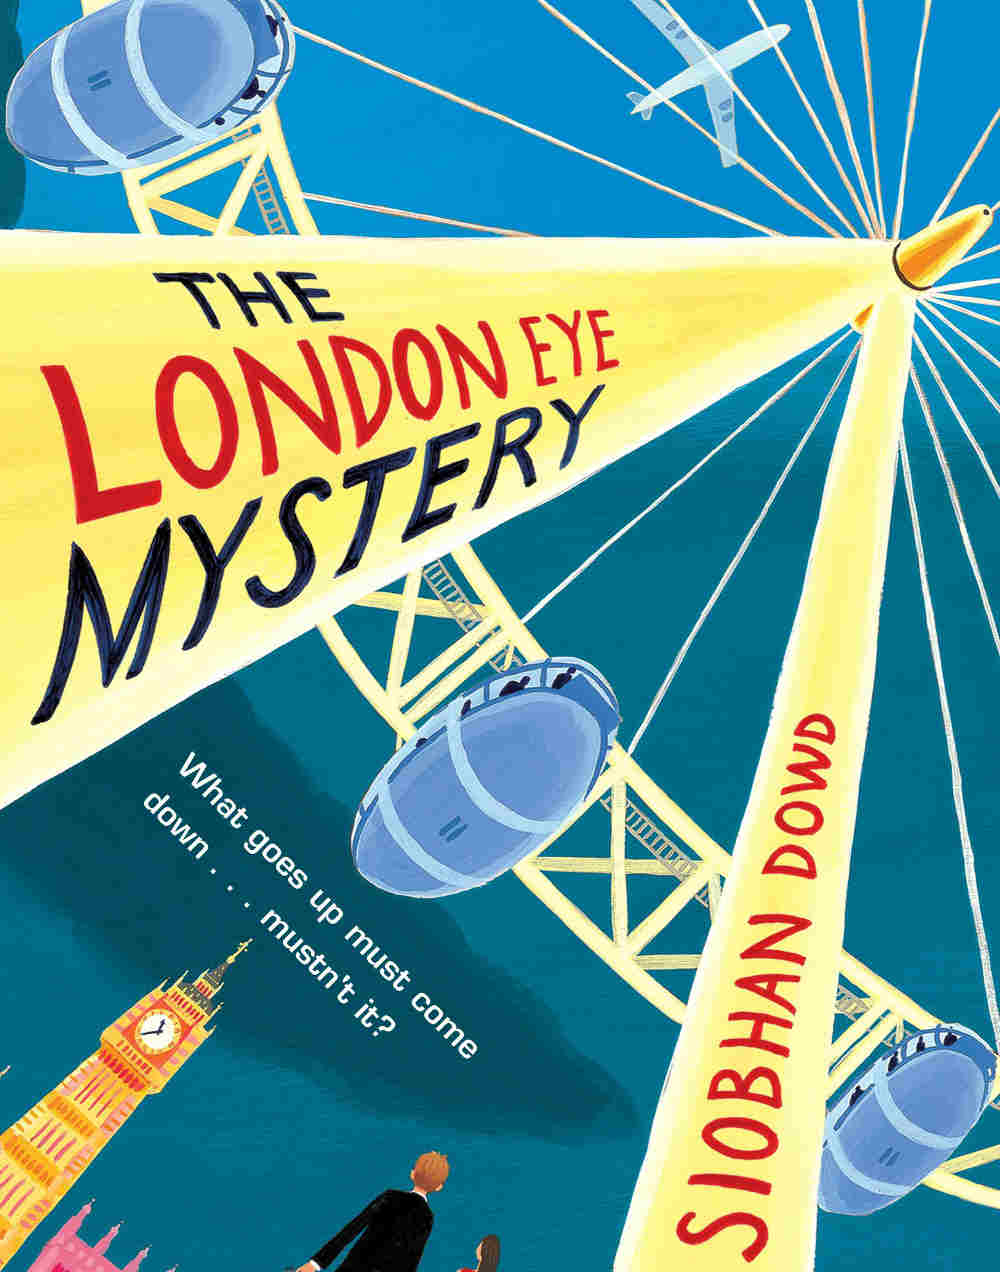 children's books set in London, kids' books set in London, London books for kids, London eye books